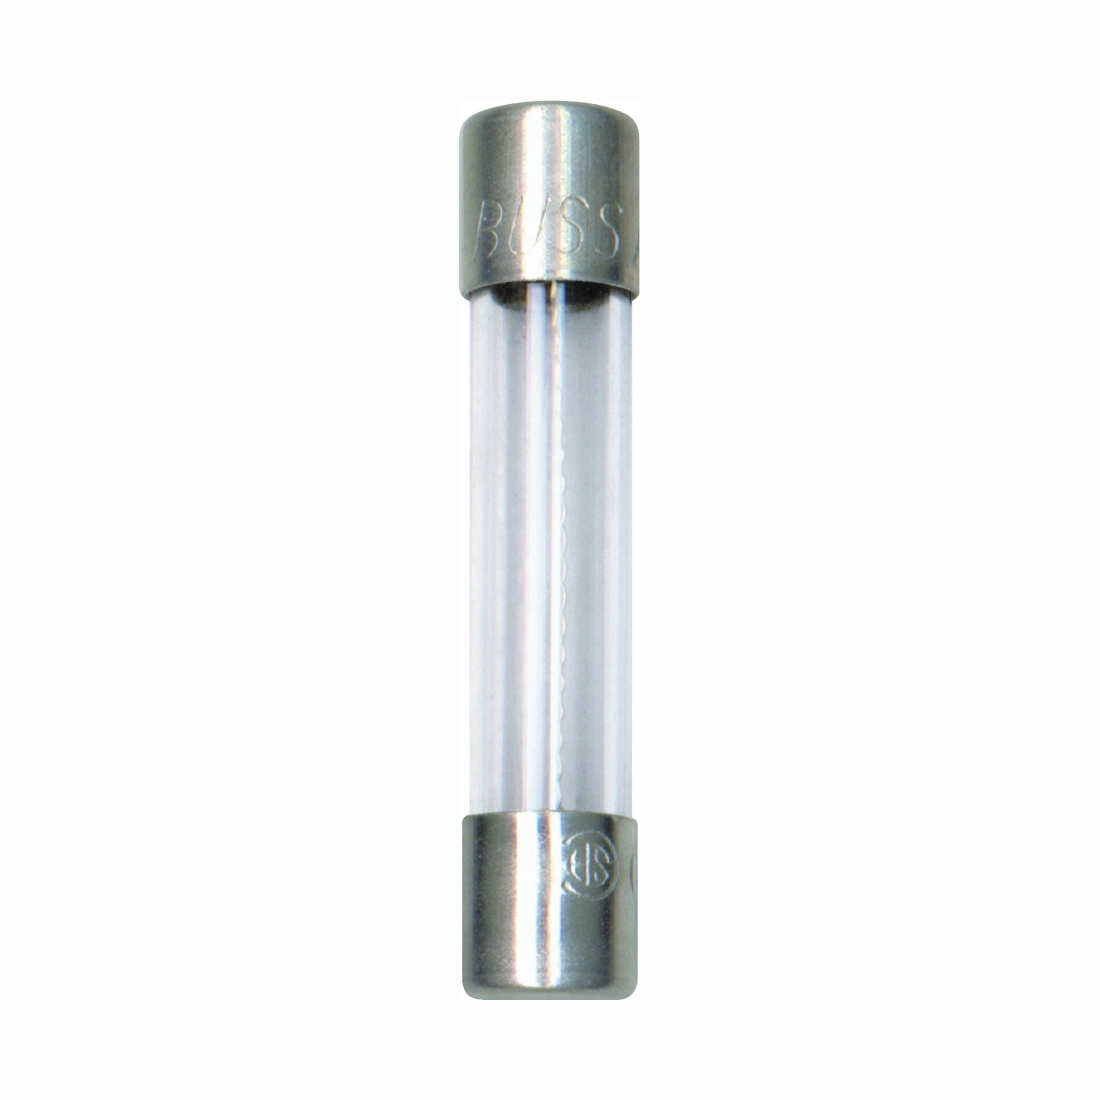 Picture of Bussmann BP/AGC-4-RP Fast-Acting Fuse, 4 A, 250 V, 10 kA at 125 VAC, 200 A at 250 VAC Interrupt, Glass Body